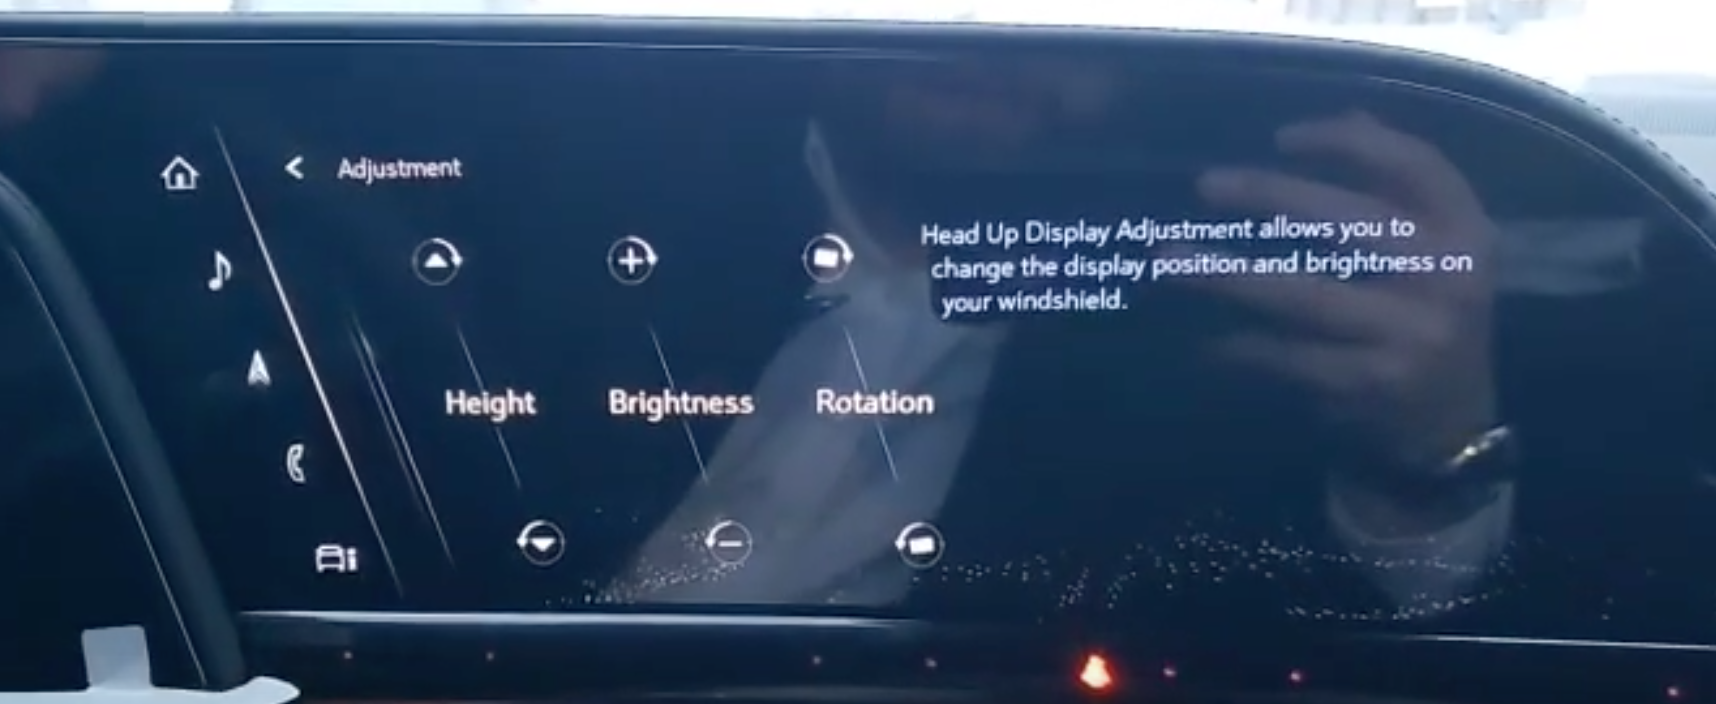 Adjusting the height, brightness and rotation of the heads-up display through sliders